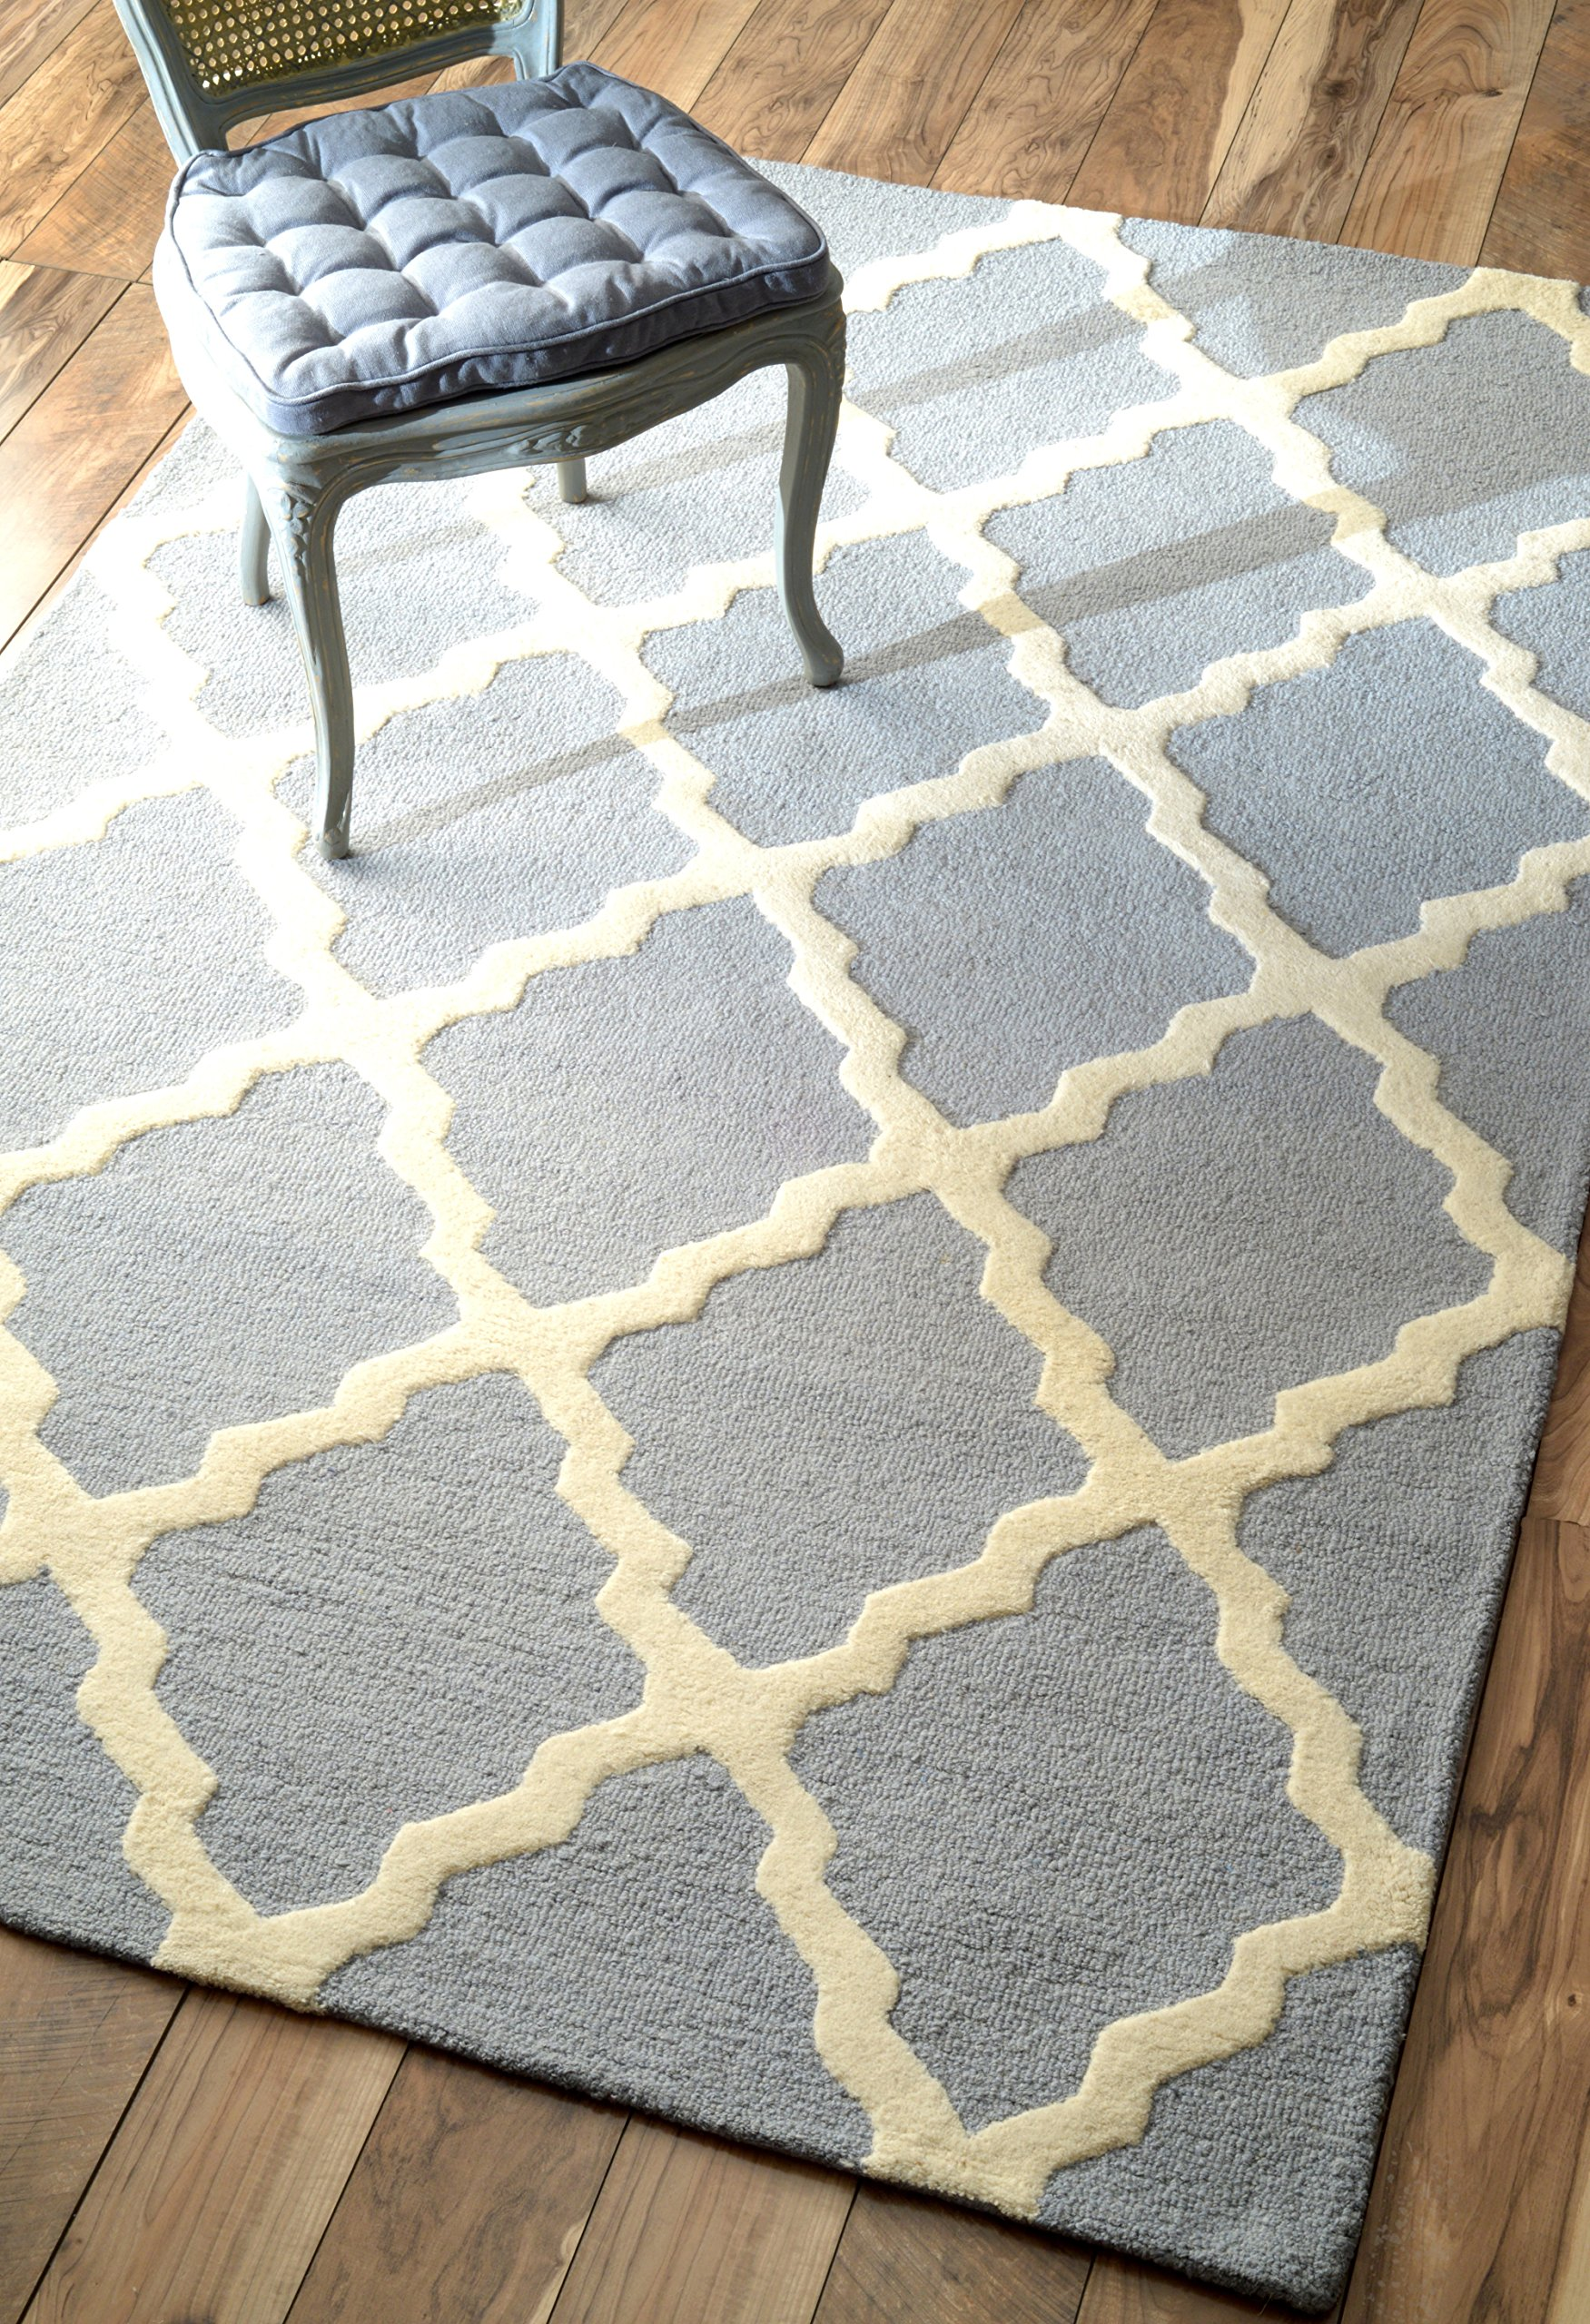 nuLOOM Varanas Collection Marrakech Trellis Contemporary Transitional Hand Made Area Rug, 5 Feet by 8 Feet, Spa Blue